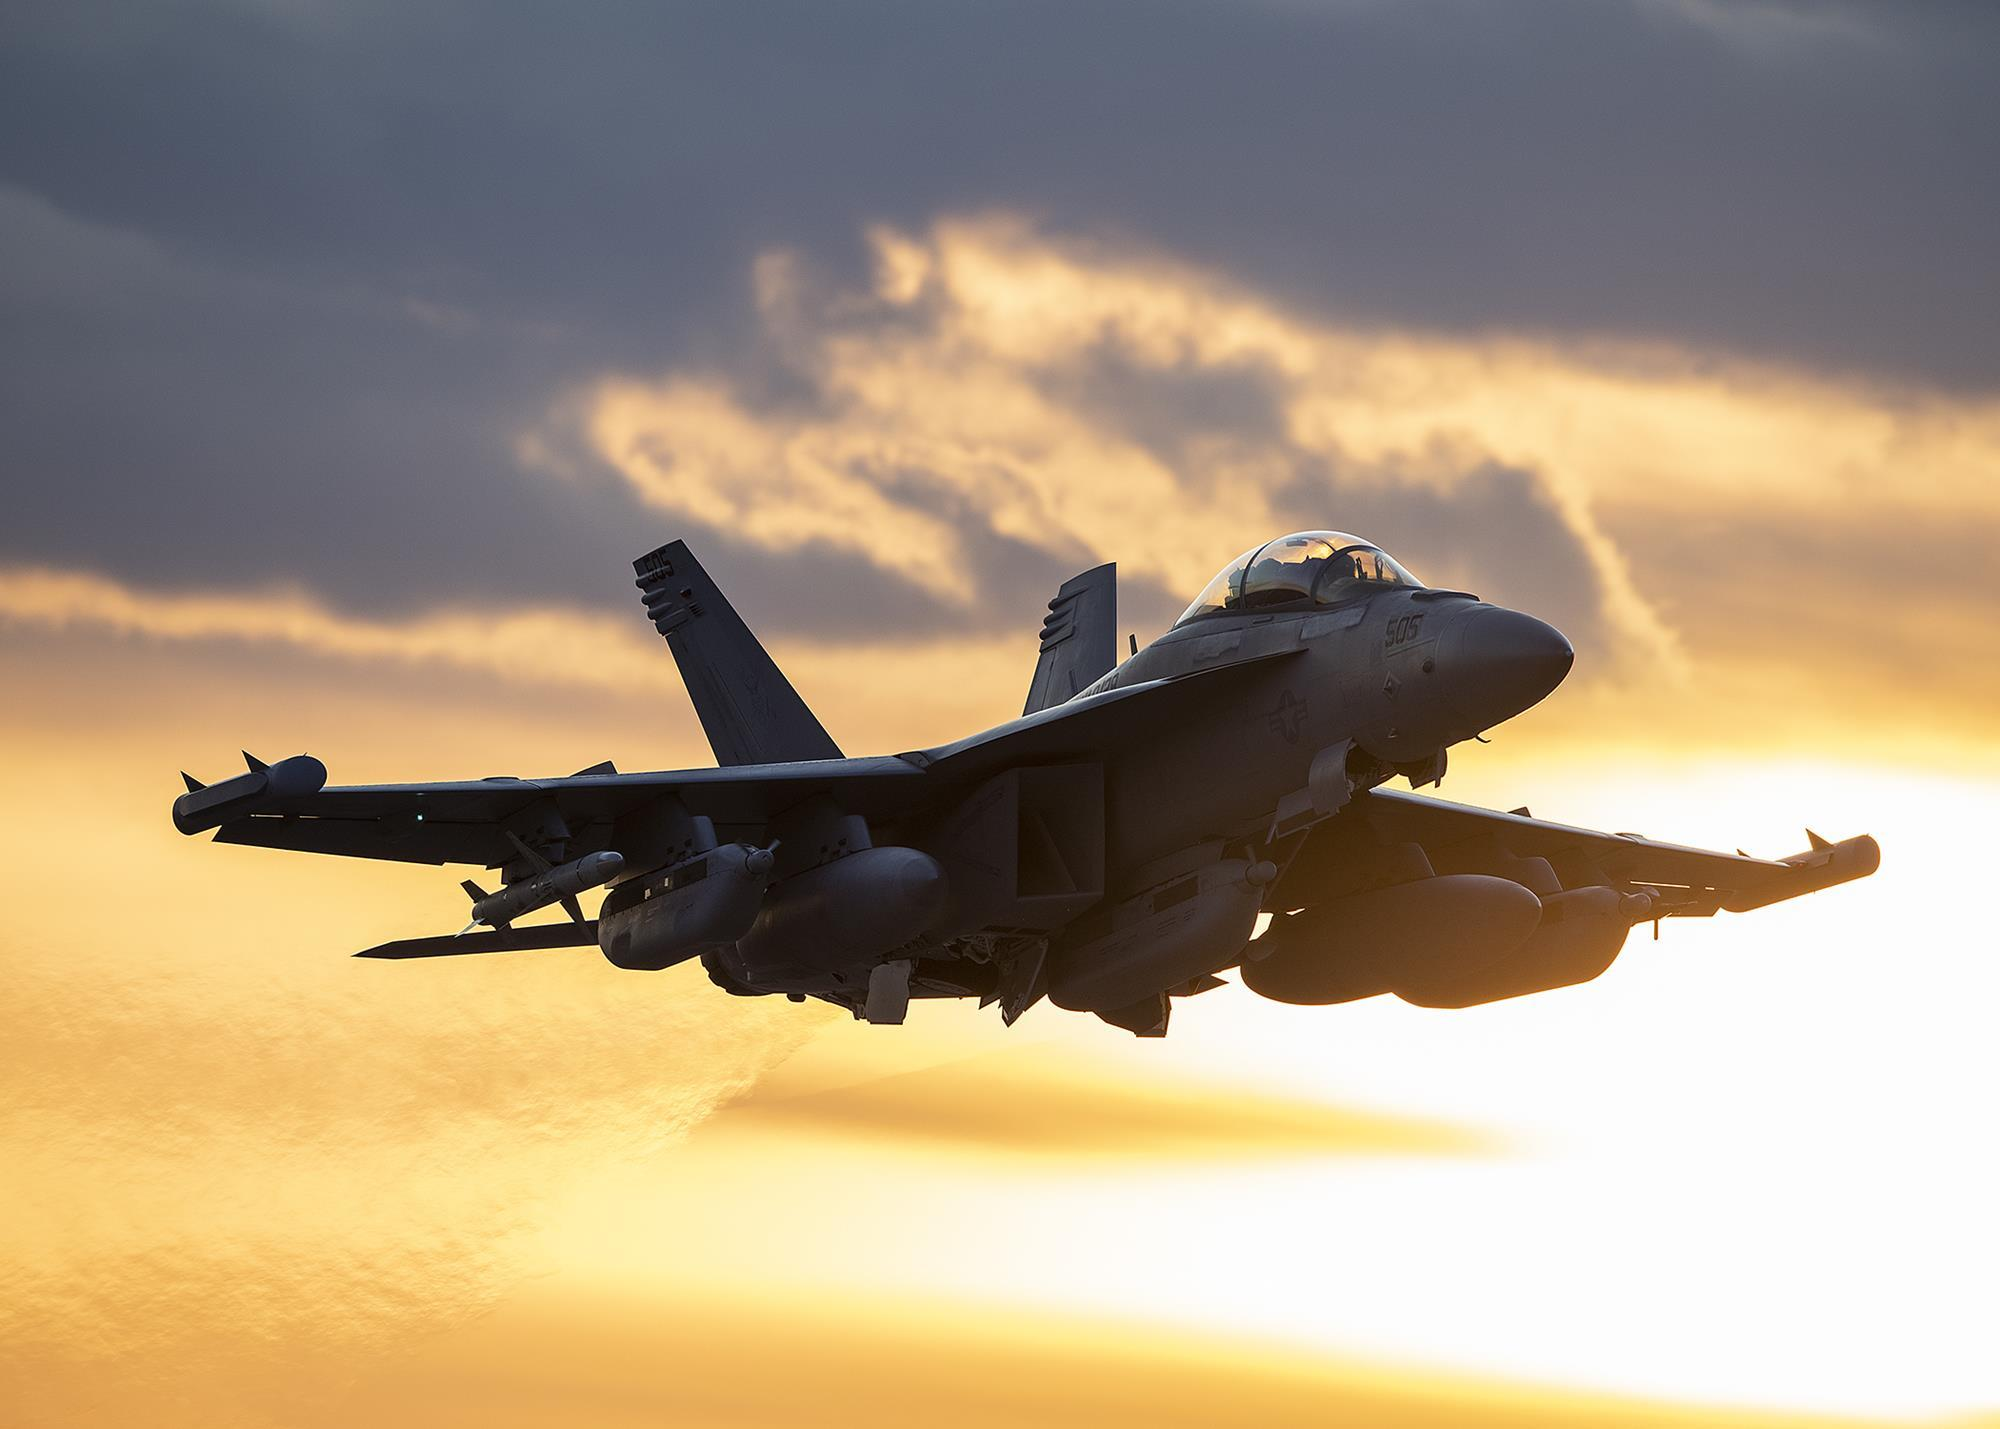 US Navy starts final tests of low-band jammers for EA-18G Growler